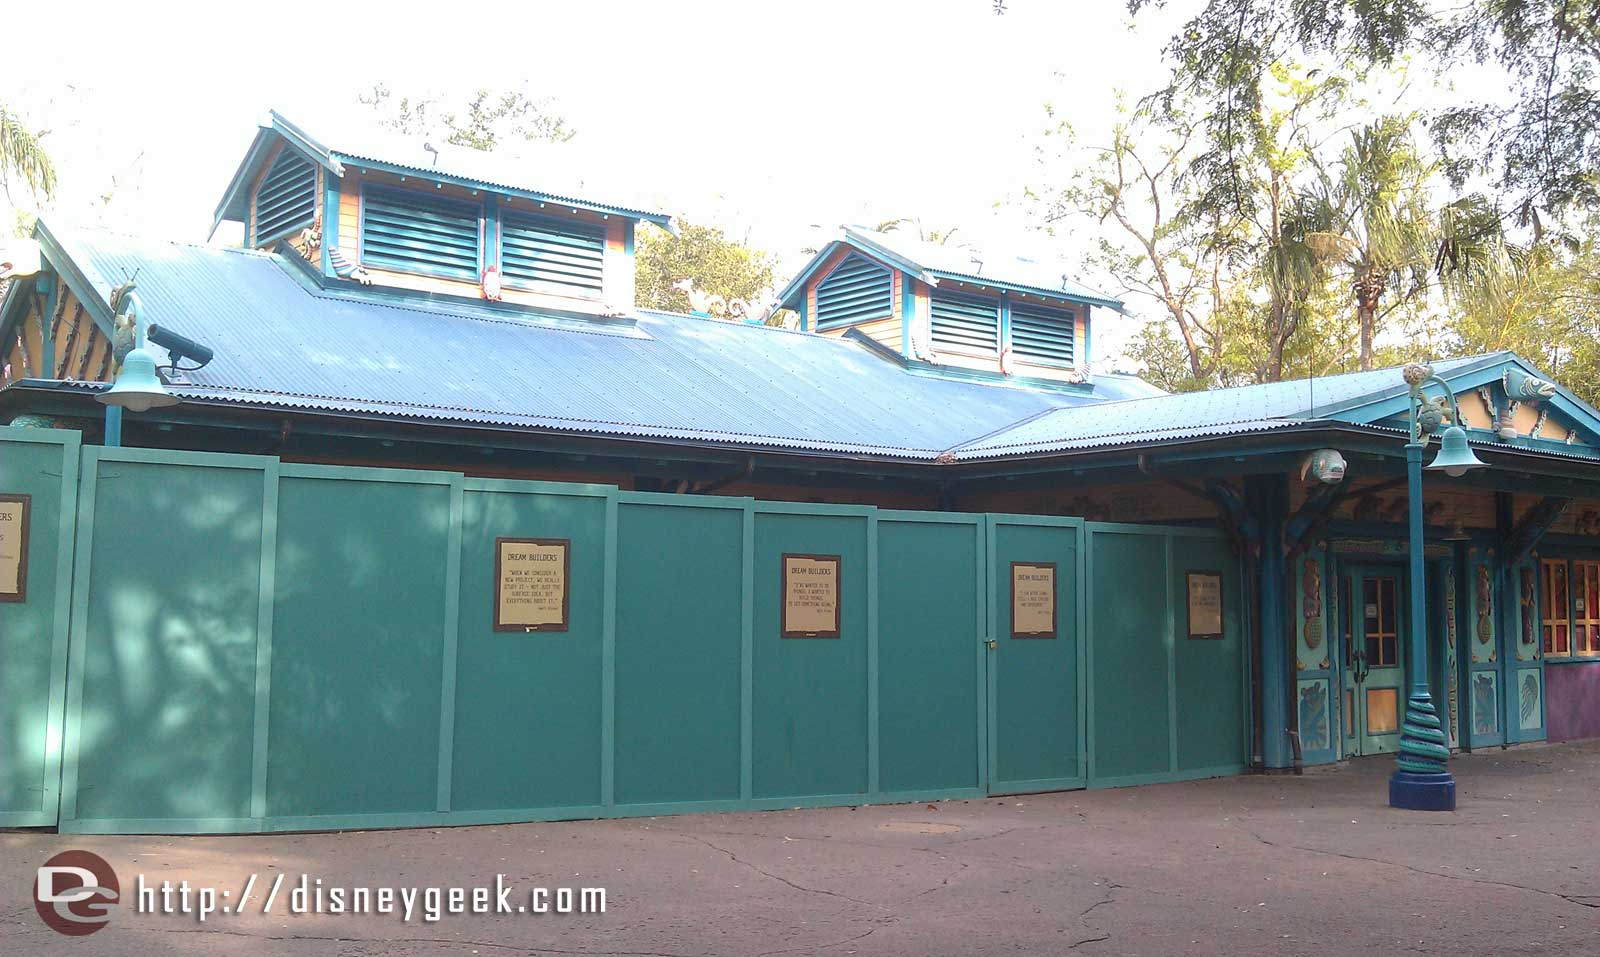 More construction walls at AK causing mild DCA flashbacks (also contributing saw Kathy Mangum @ Epcot earlier)